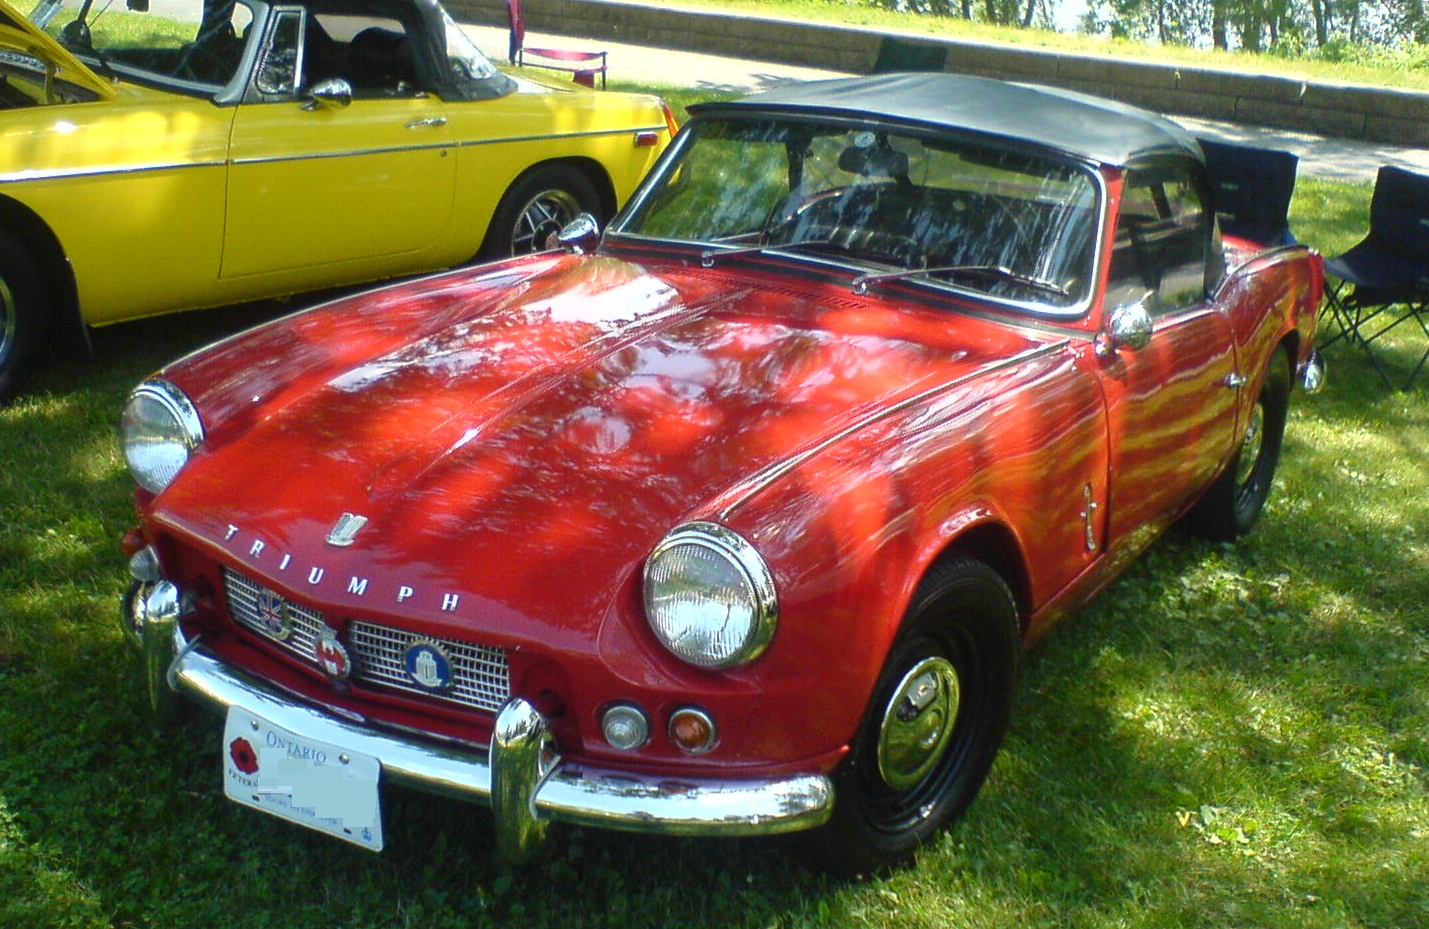 British Sports Cars For Sale In Ontario Canada